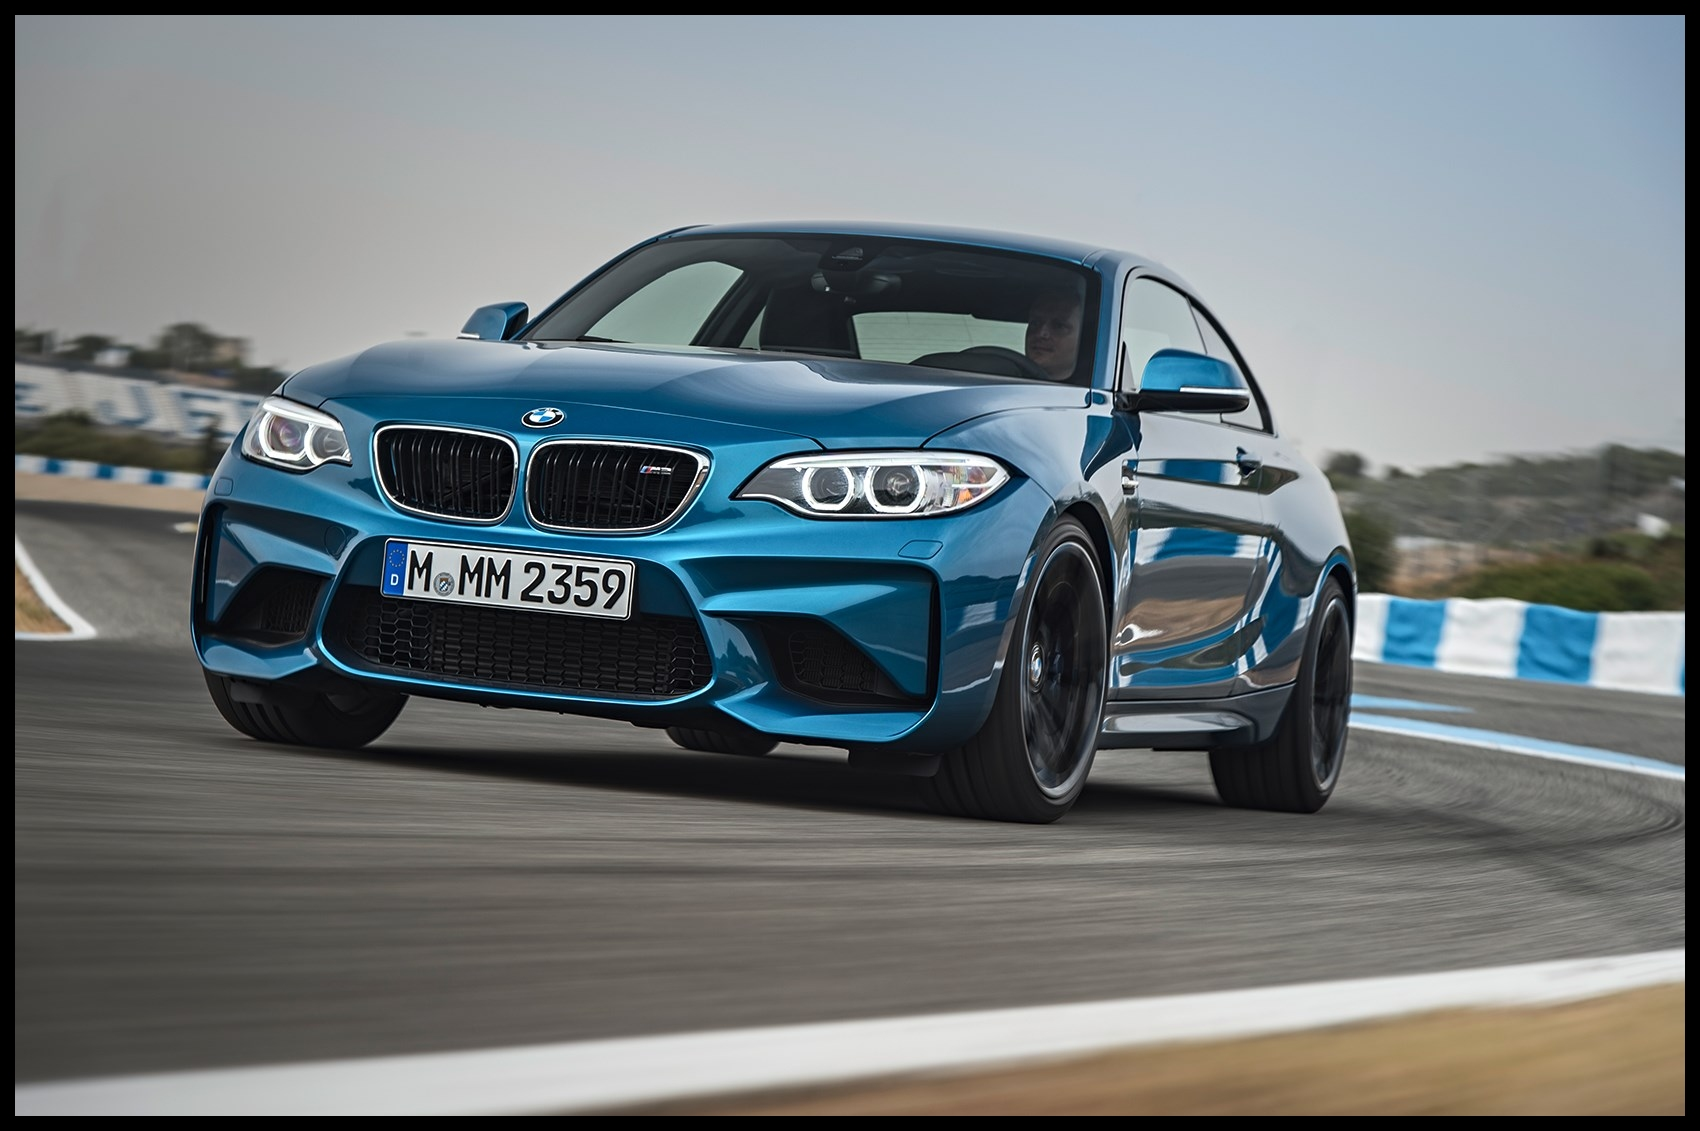 The new 2016 BMW M2